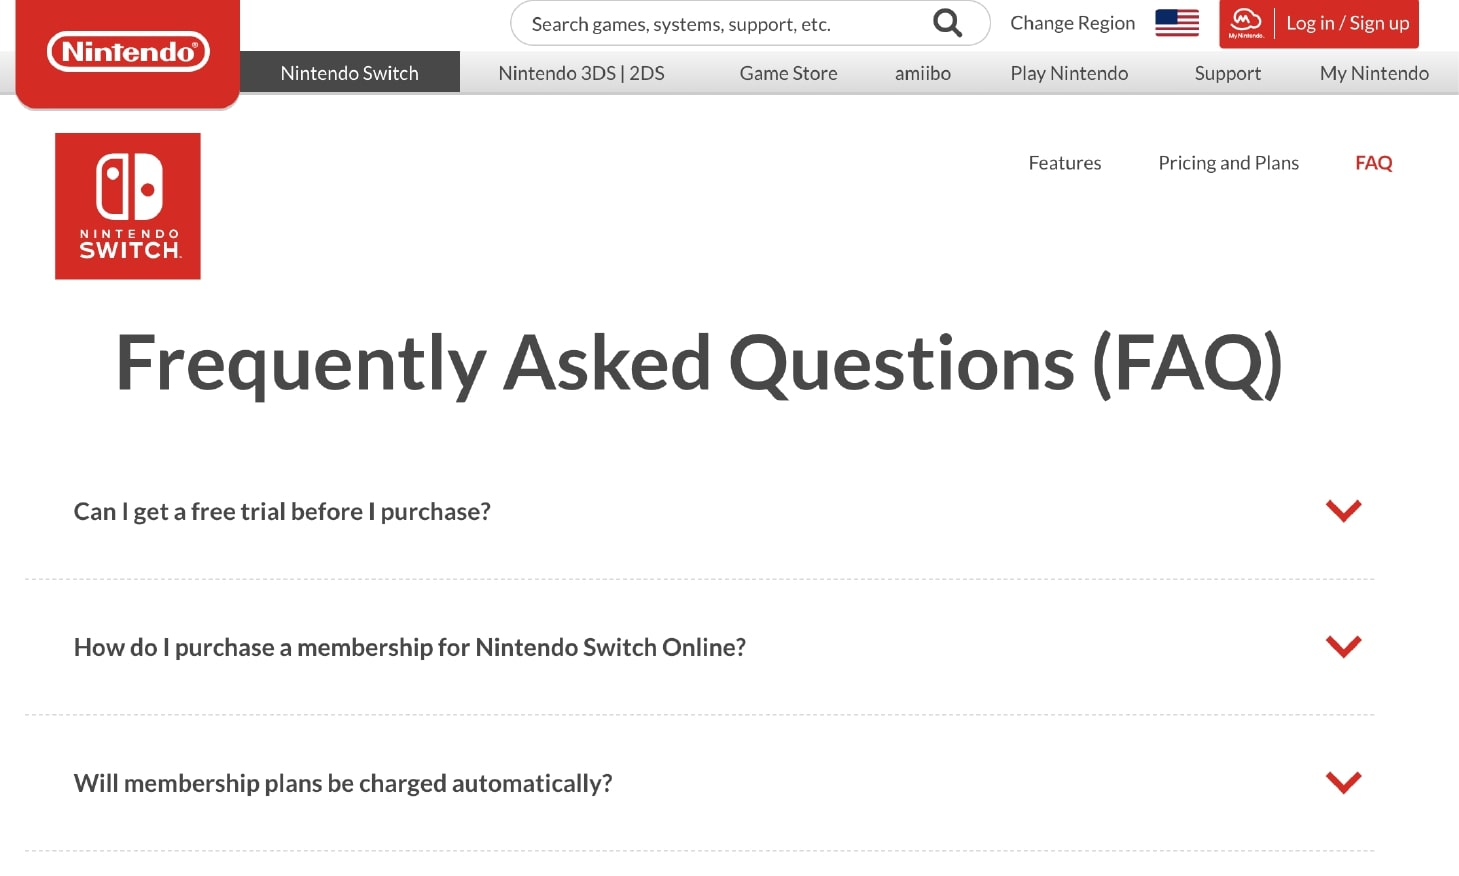 Example of Using FAQ Customer Service by Nintendo Switch